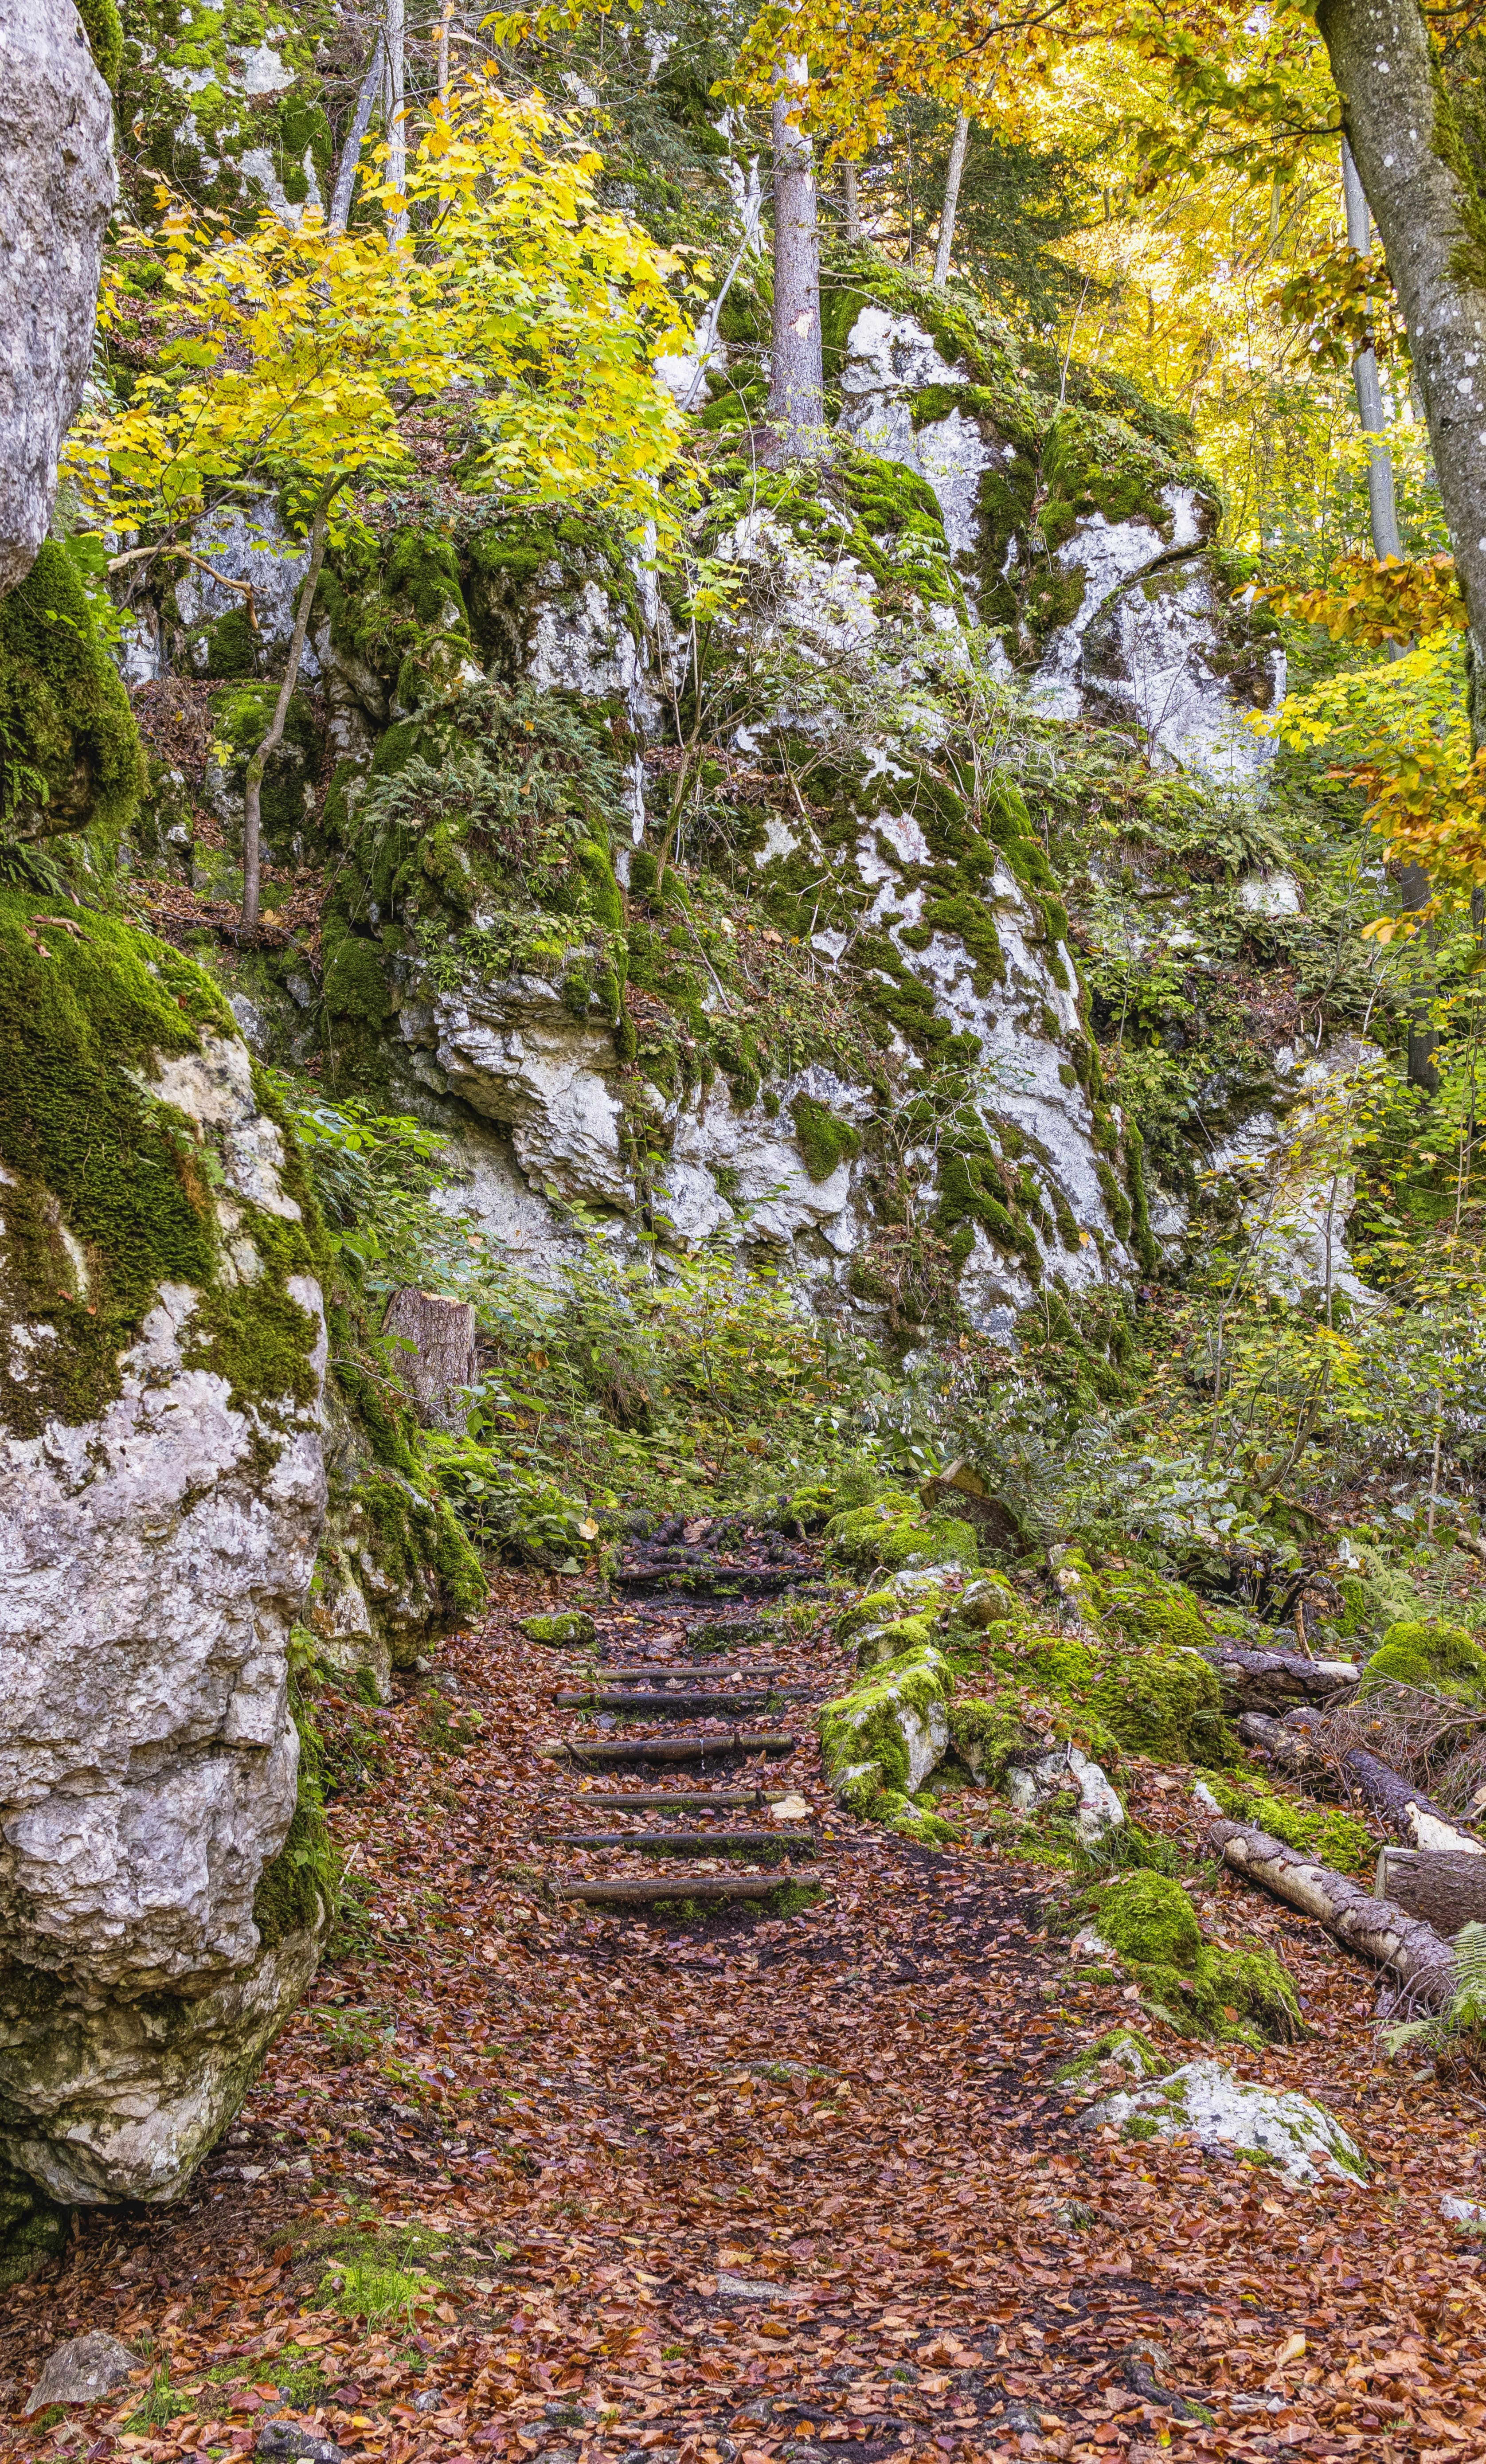 Free stock photo of stairs, nature, forest, hiking